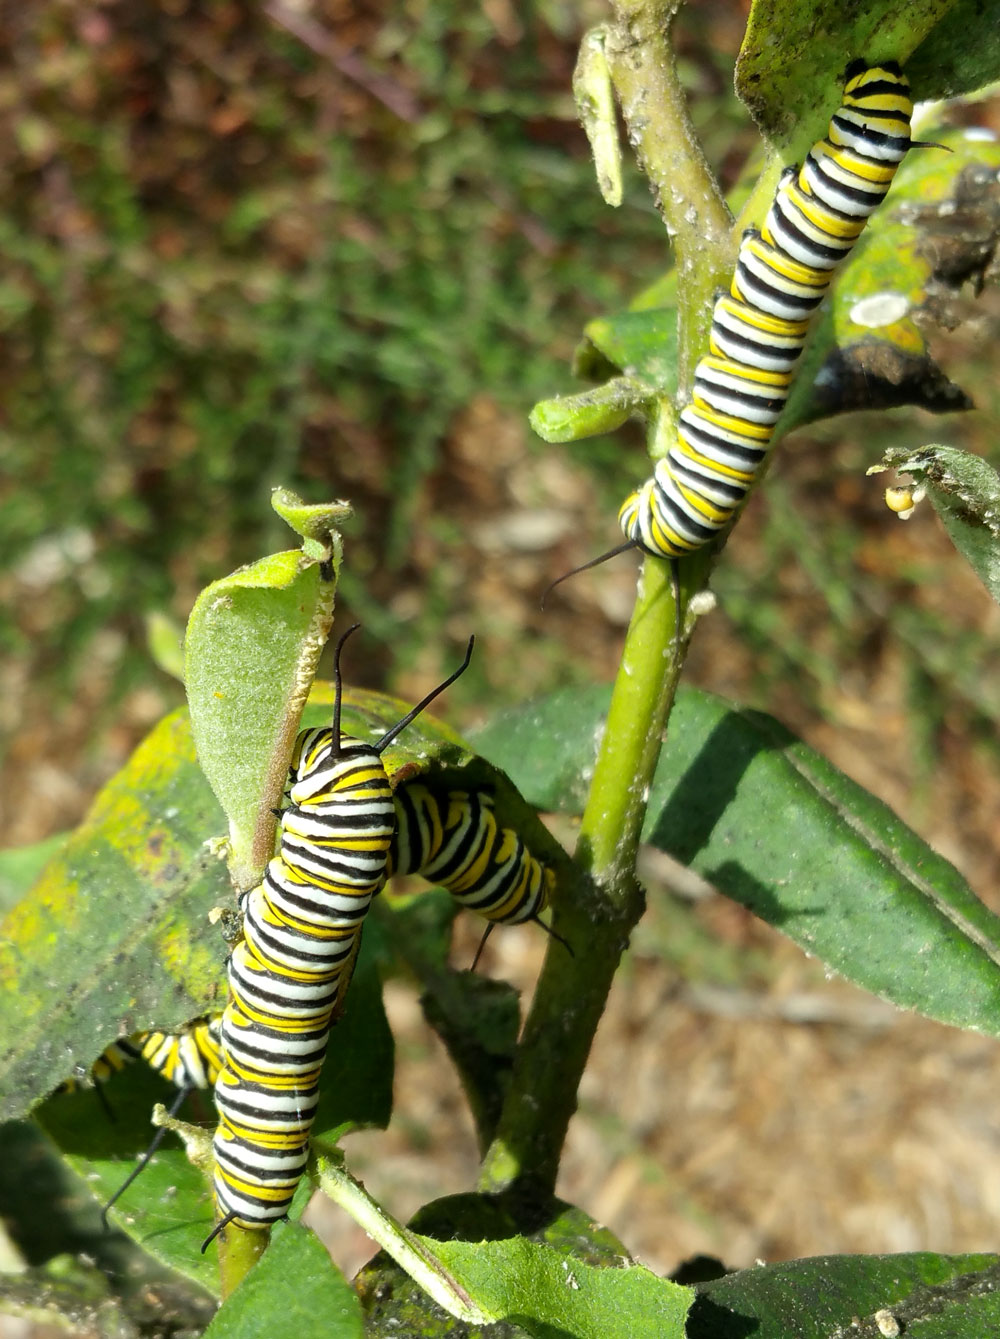 Monarch caterpillars on common milkweed (Asclepias syriaca) in mid-September.